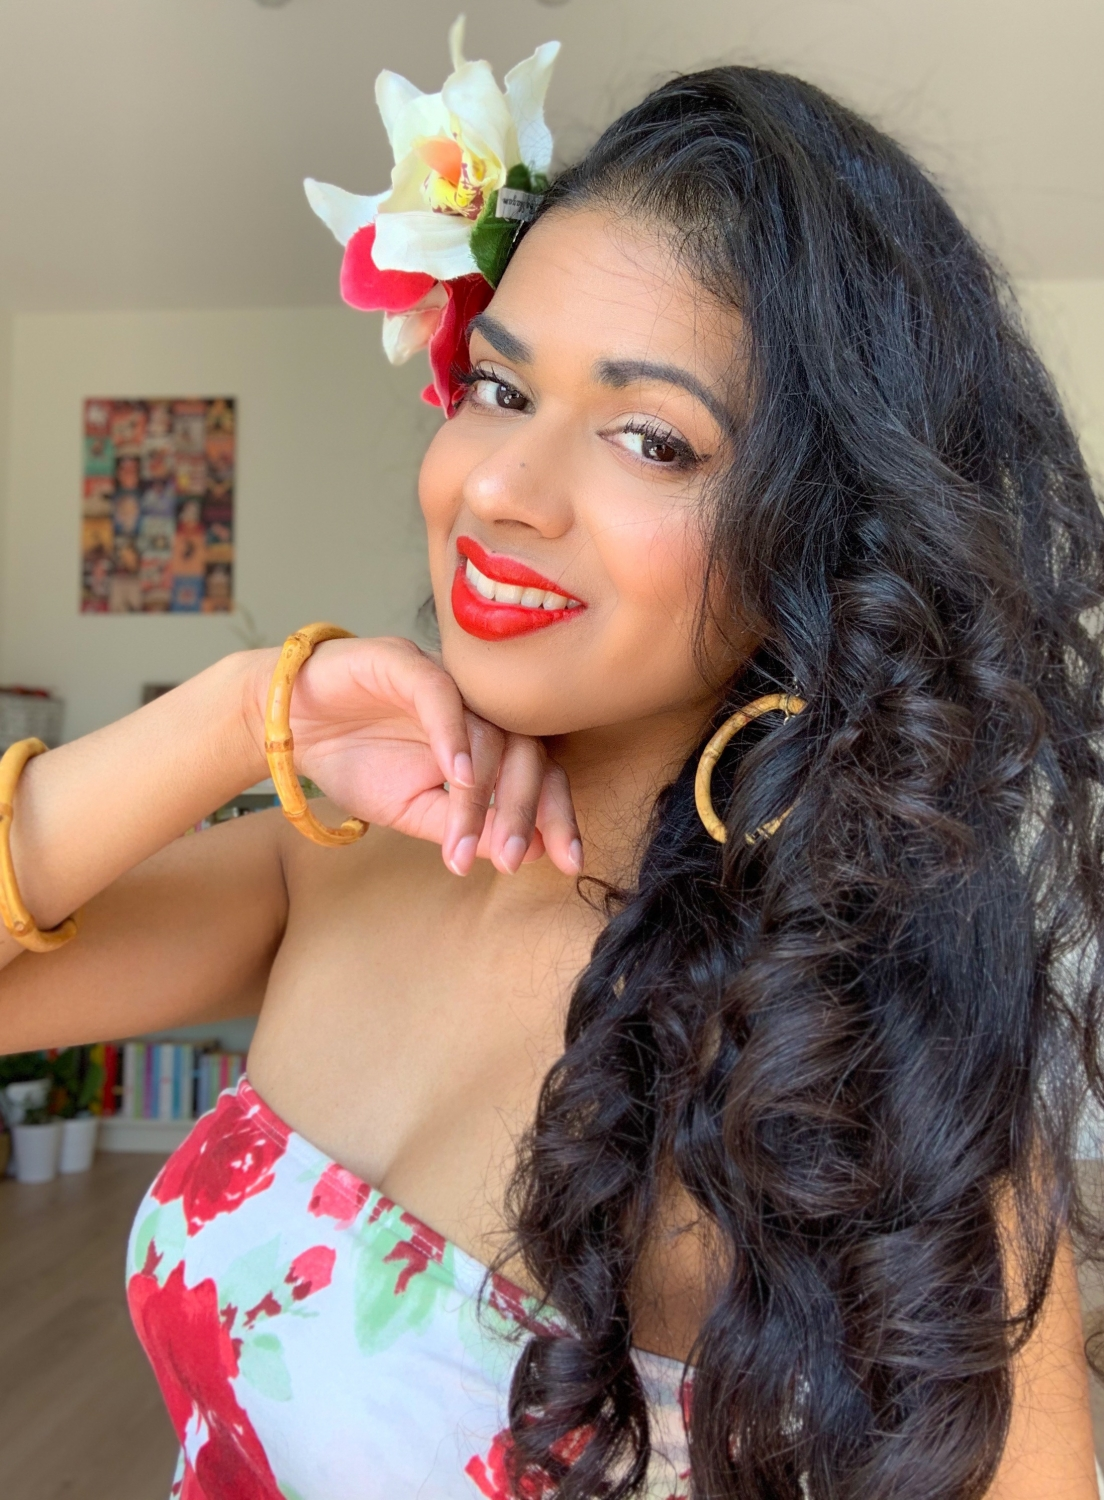 Headband curls day 2 - Tropical loose waves